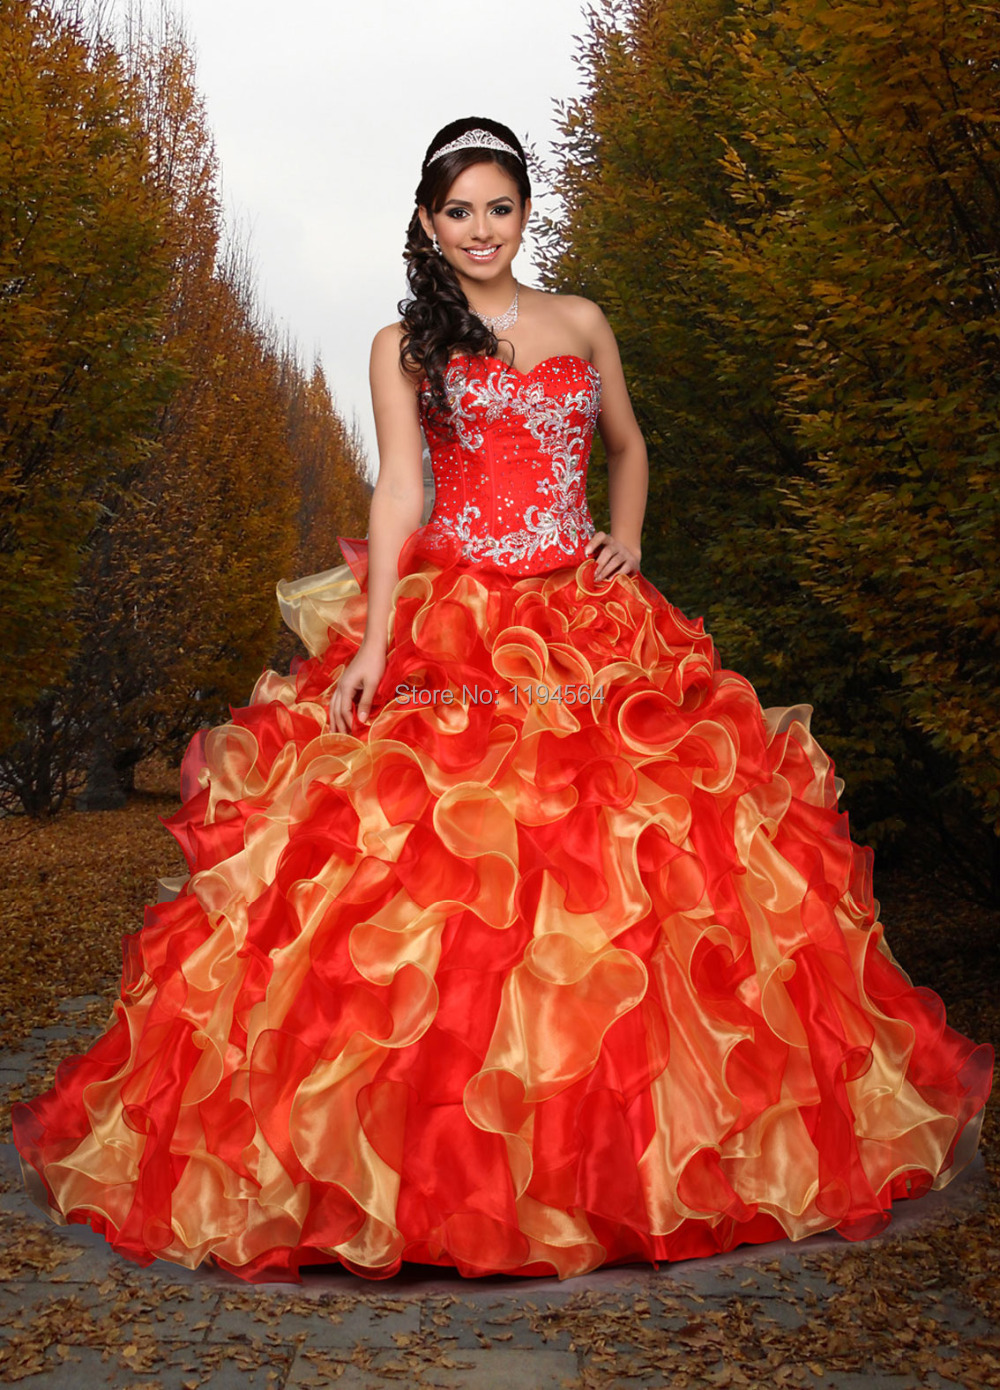 Red and quinceanera gold dresses recommendations to wear for spring in 2019